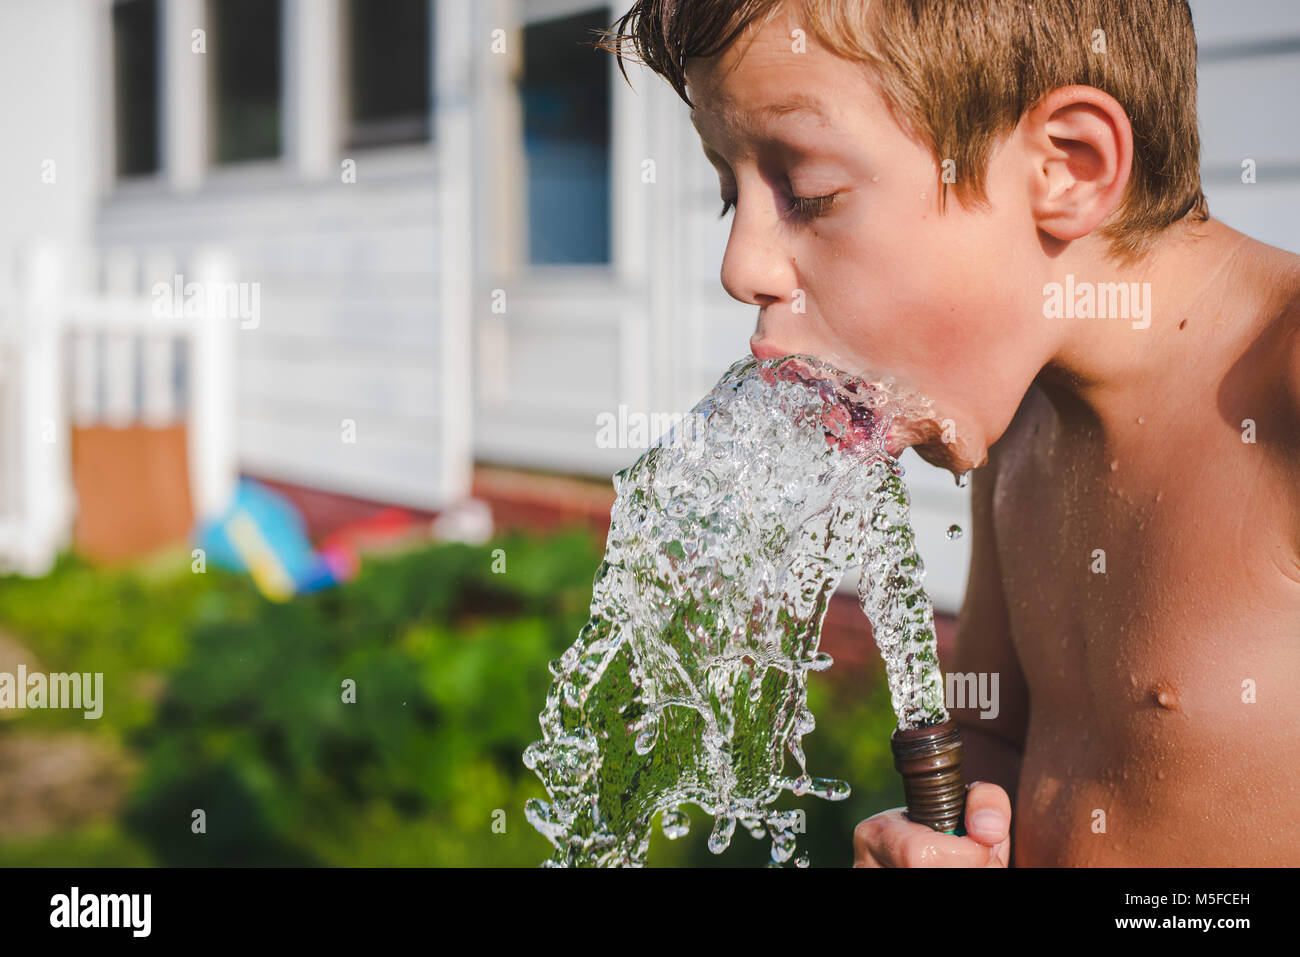 A 10-year old boy drinks water from a water hose on a sunny Summer day - Stock Image